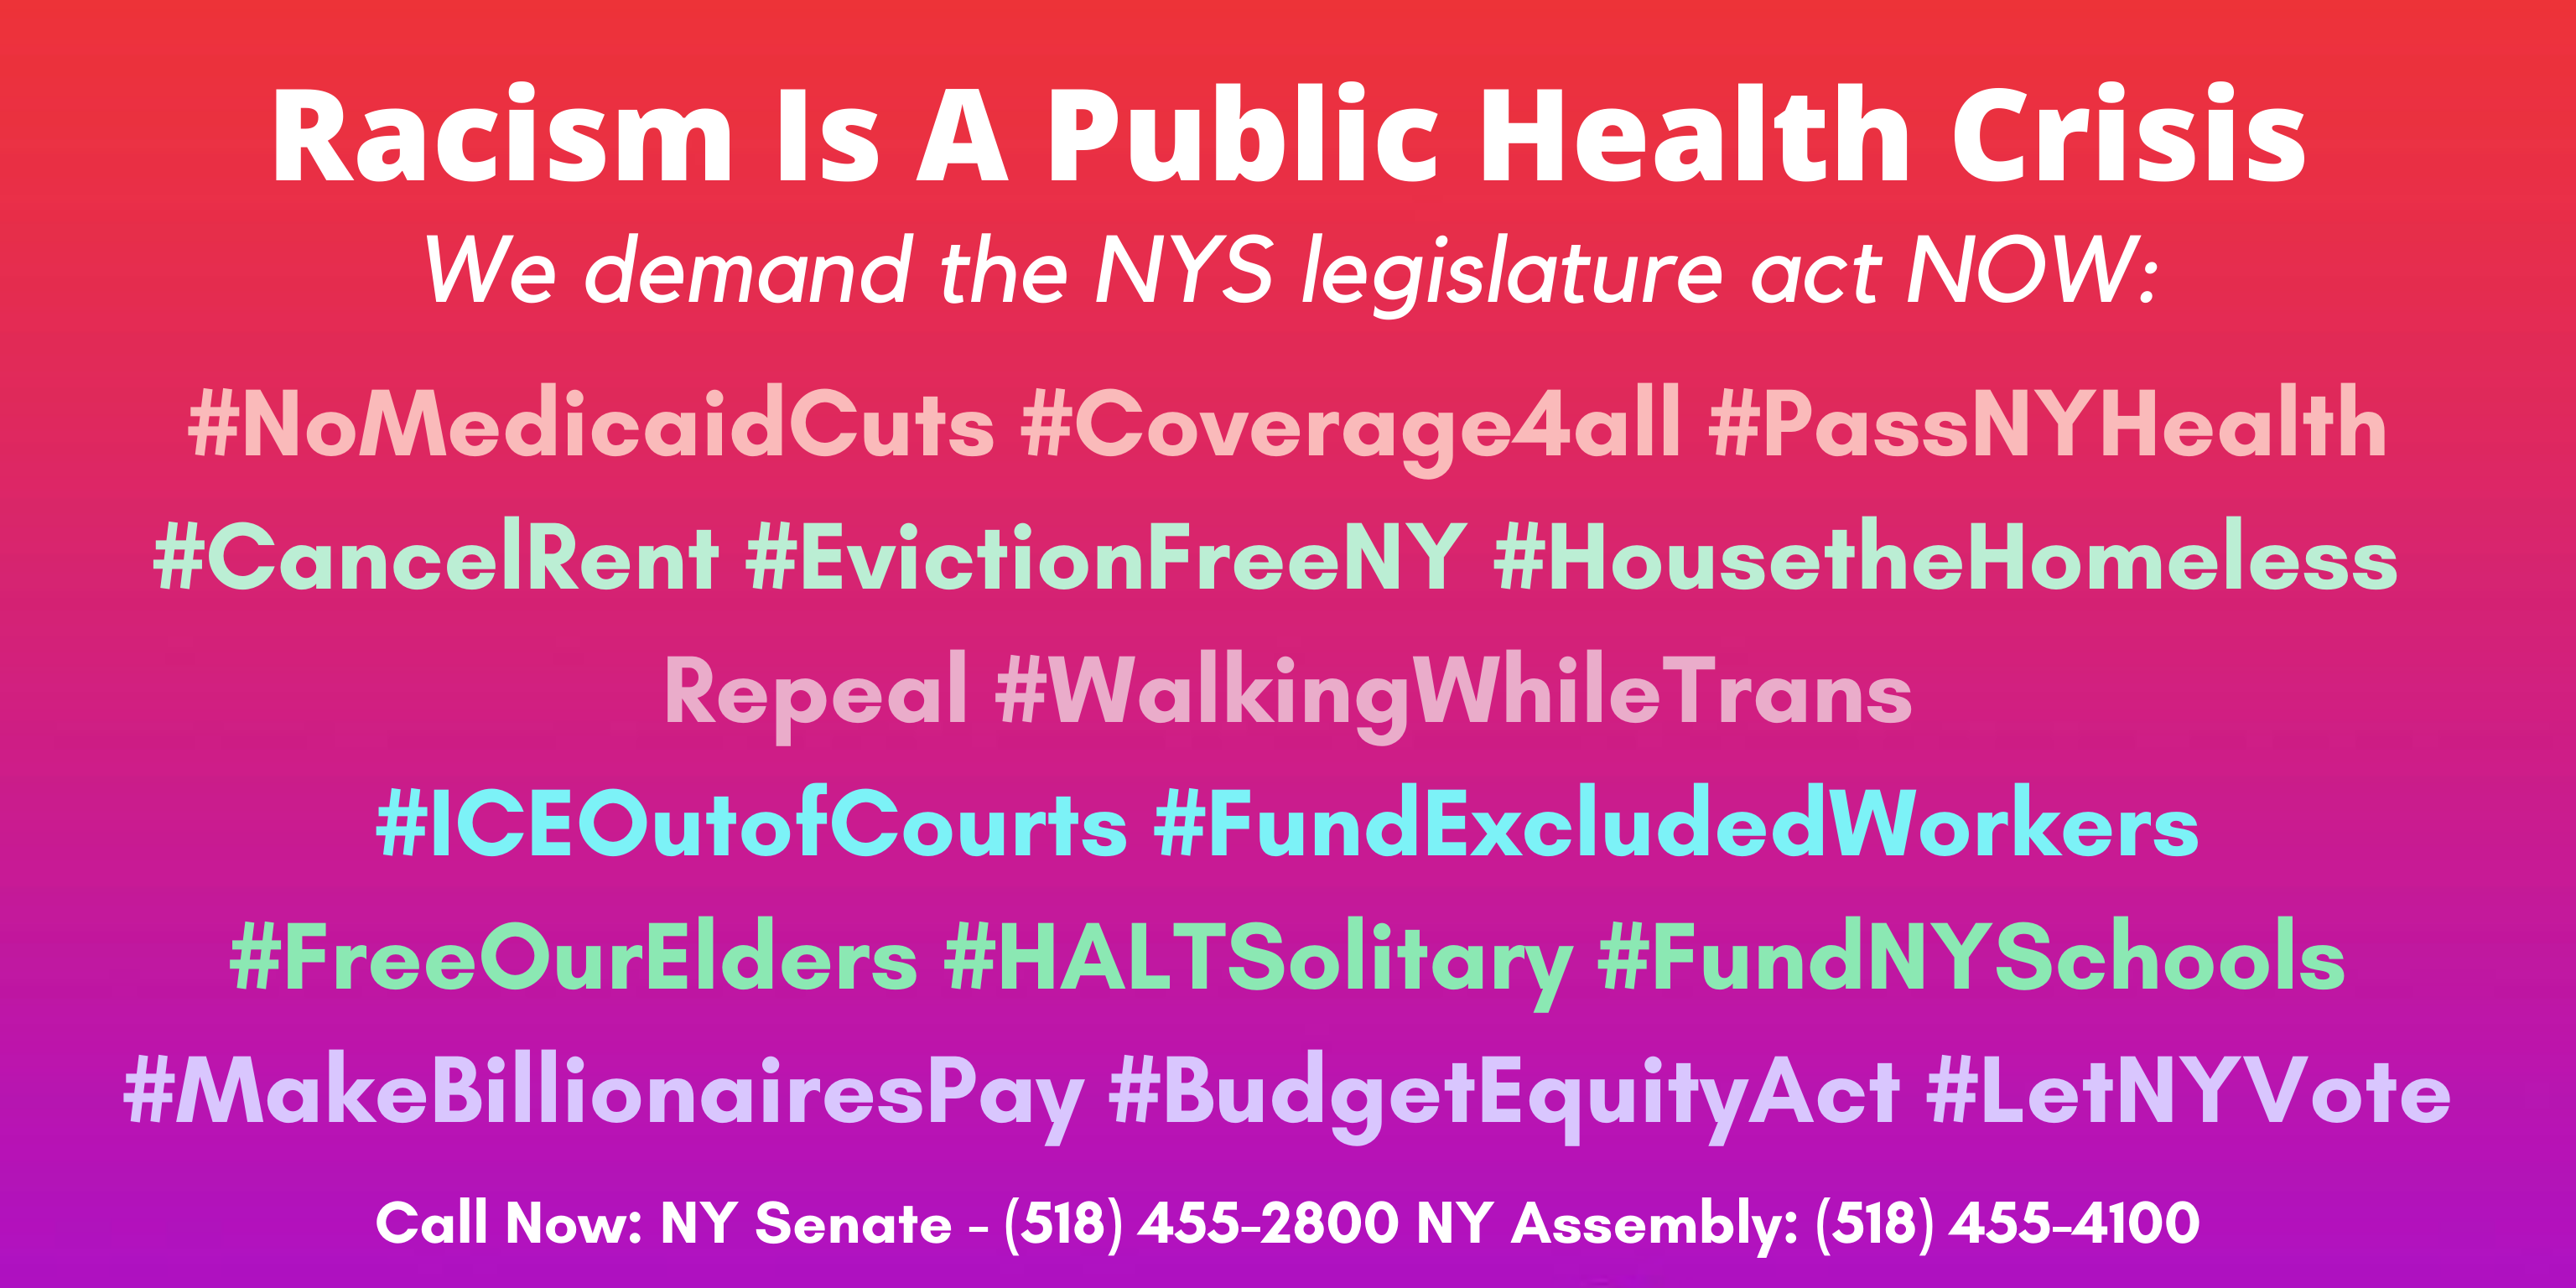 The background color of the image fades from red to pink to purple. The text in white: Racism Is A Public Health Crisis We demand the NYS legislature act NOW: #NoMedicaidCuts #Coverage4all #PassNYHealth #CancelRent #EvictionFreeNY #HousetheHomeless Repeal #WalkingWhileTrans #ICEOutofCourts #FundExcludedWorkers #FreeOurElders #HALTSolitary #FundNYSchools #MakeBillionairesPay #BudgetEquityAct #LetNYVote. Call Now: NY Senate - (518) 455-2800 NY Assembly: (518) 455-4100